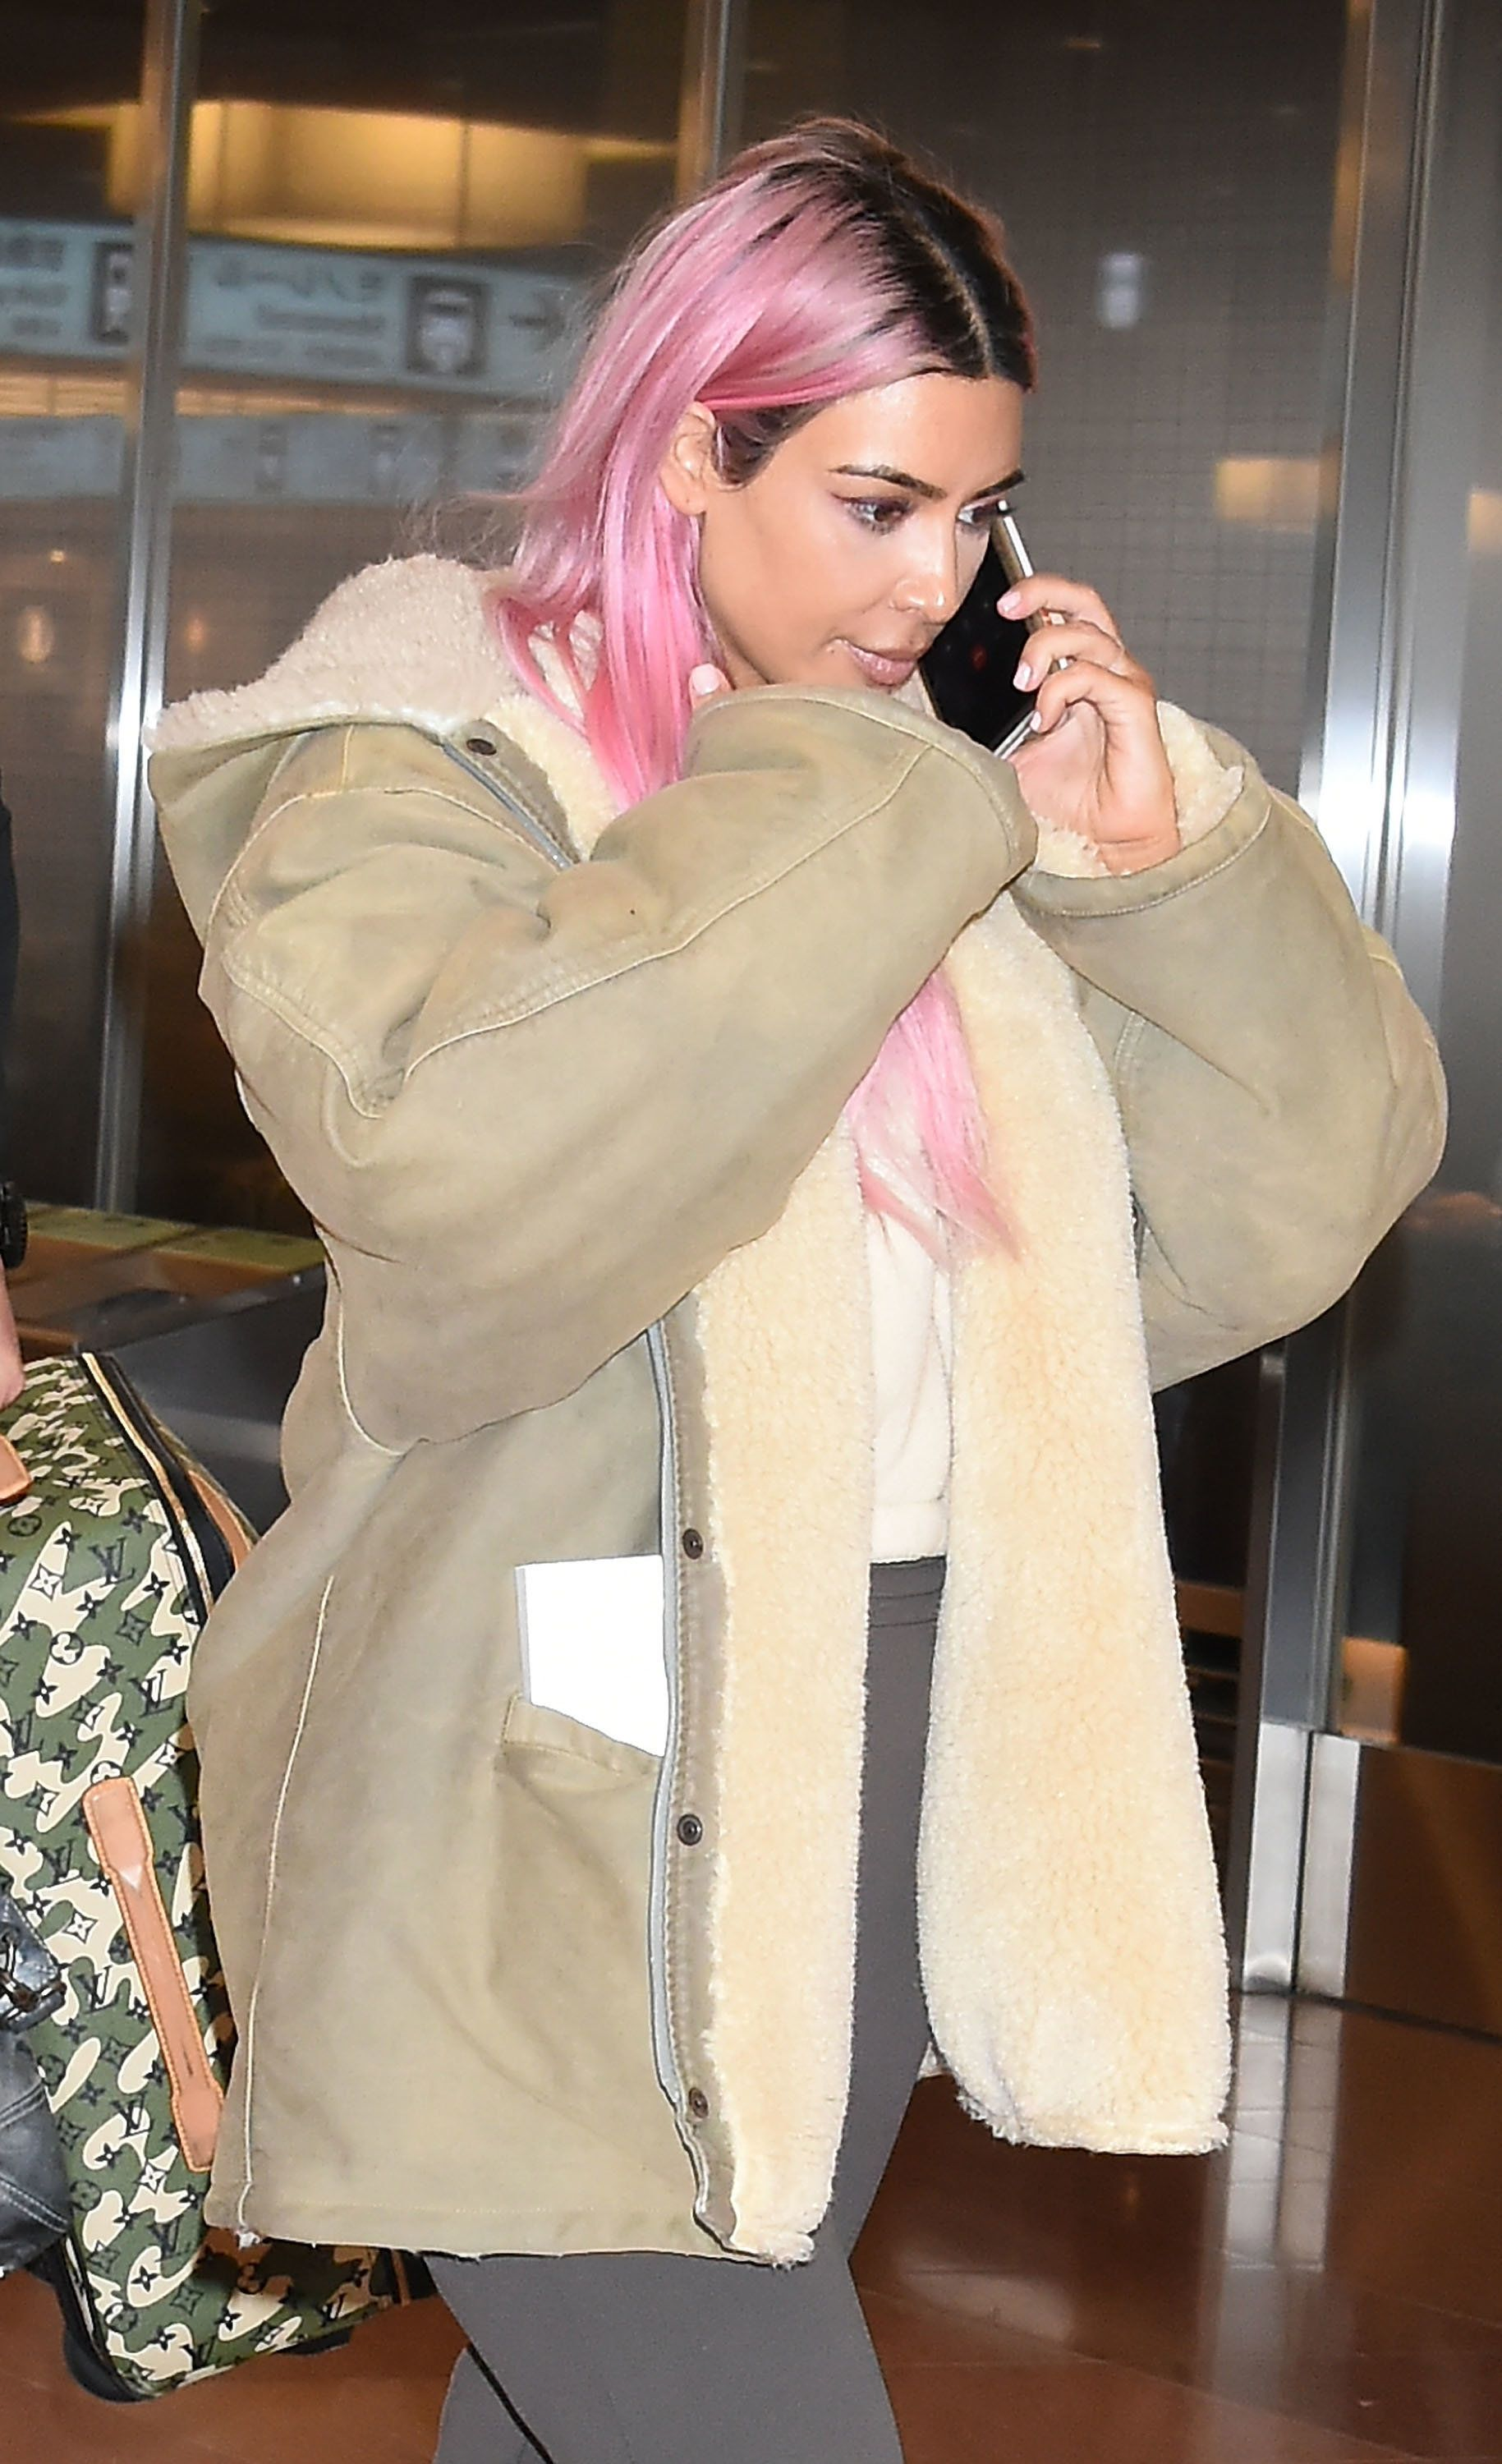 TOKYO, JAPAN - FEBRUARY 26:  Kim Kardashian is seen upon arrival at Haneda Airport on February 26, 2018 in Tokyo, Japan.  (Photo by Jun Sato/GC Images)